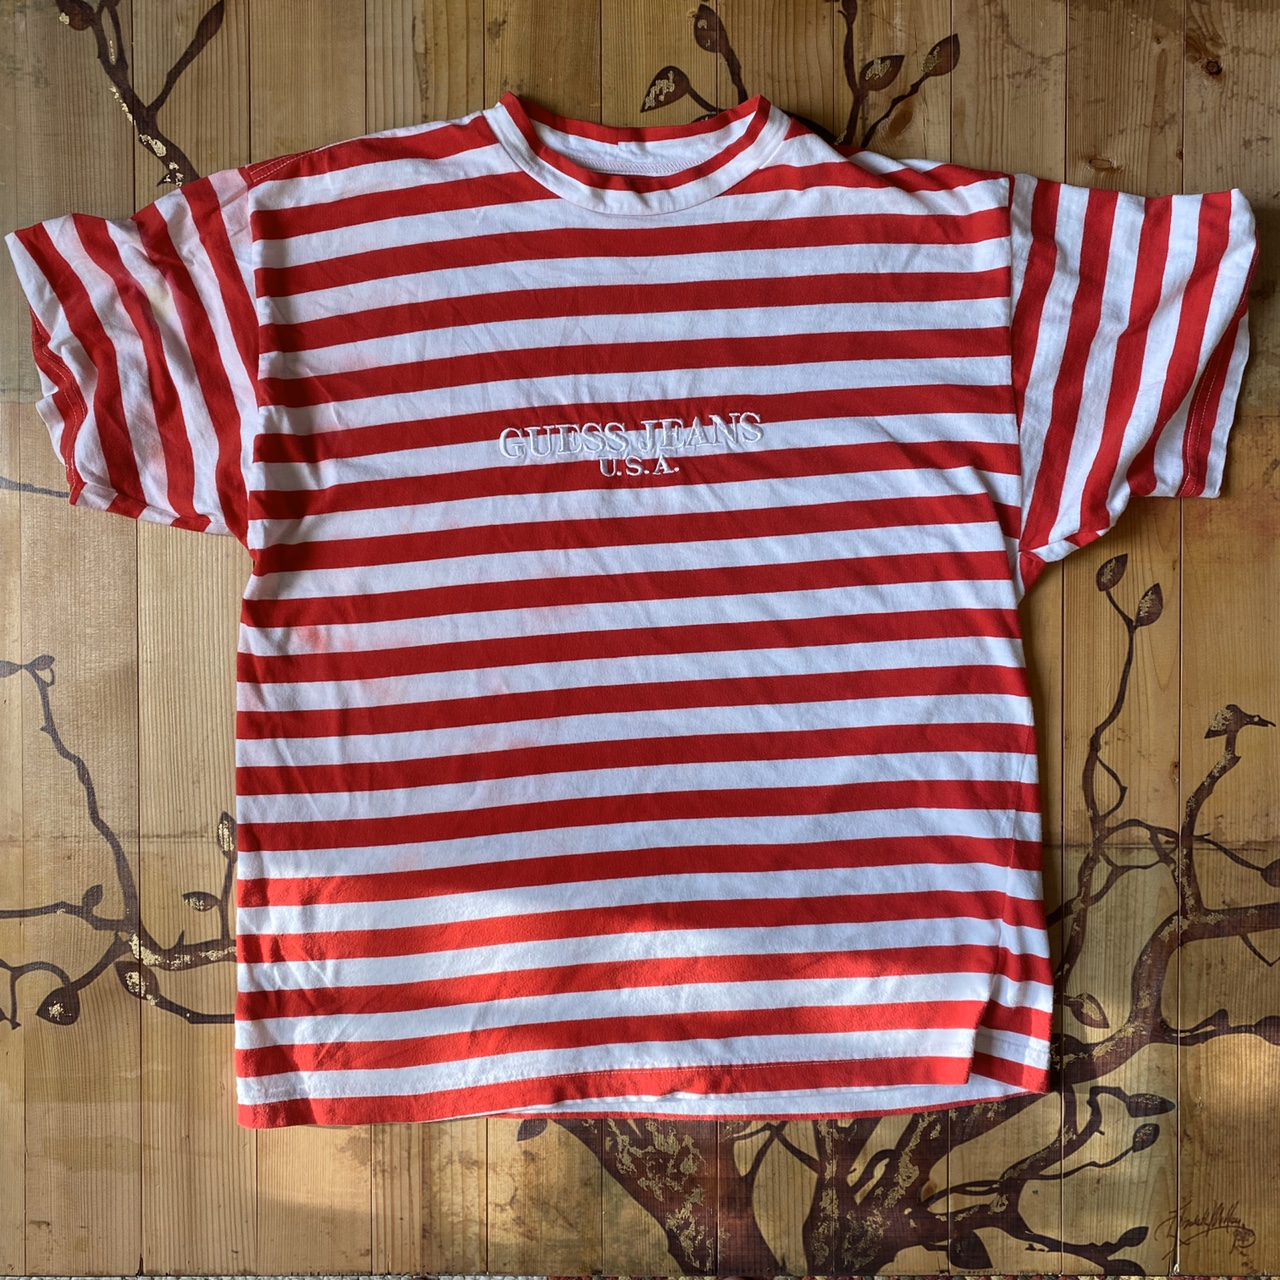 Product Image 1 - Vintage guess striped shirt candy